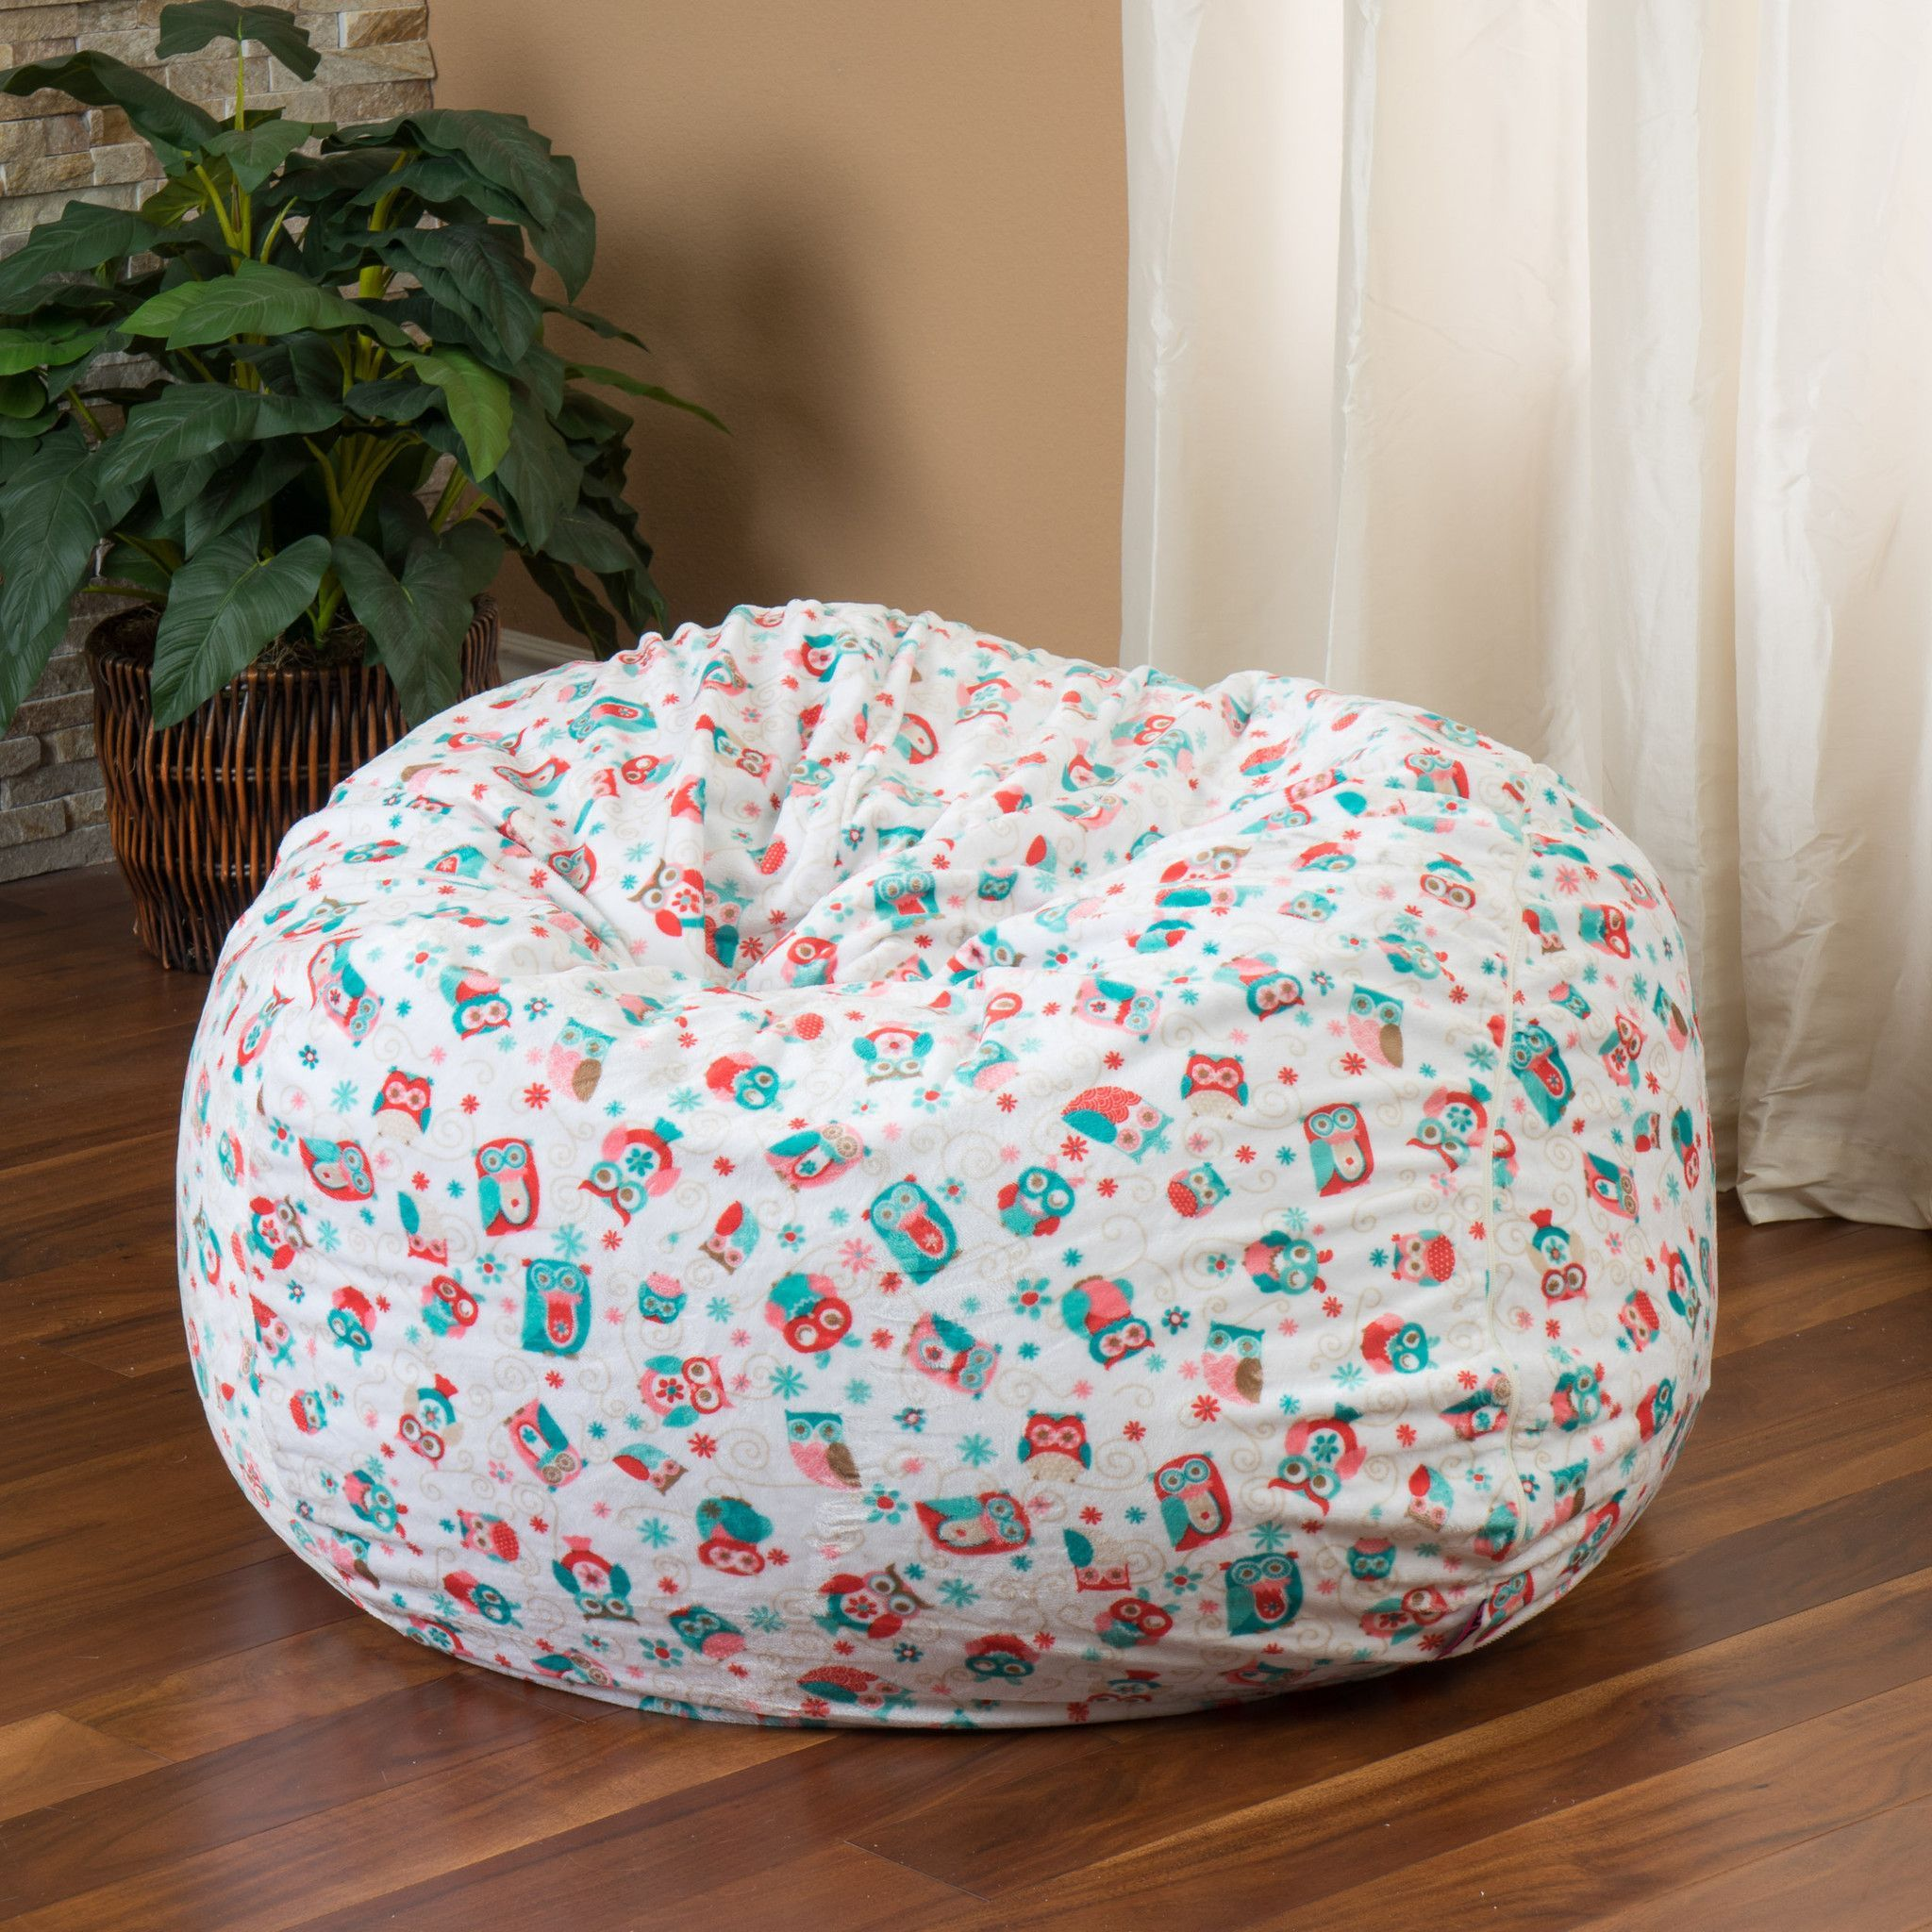 Ashley 3Ft Owl Multi Color Fabric Bean Bag Chair